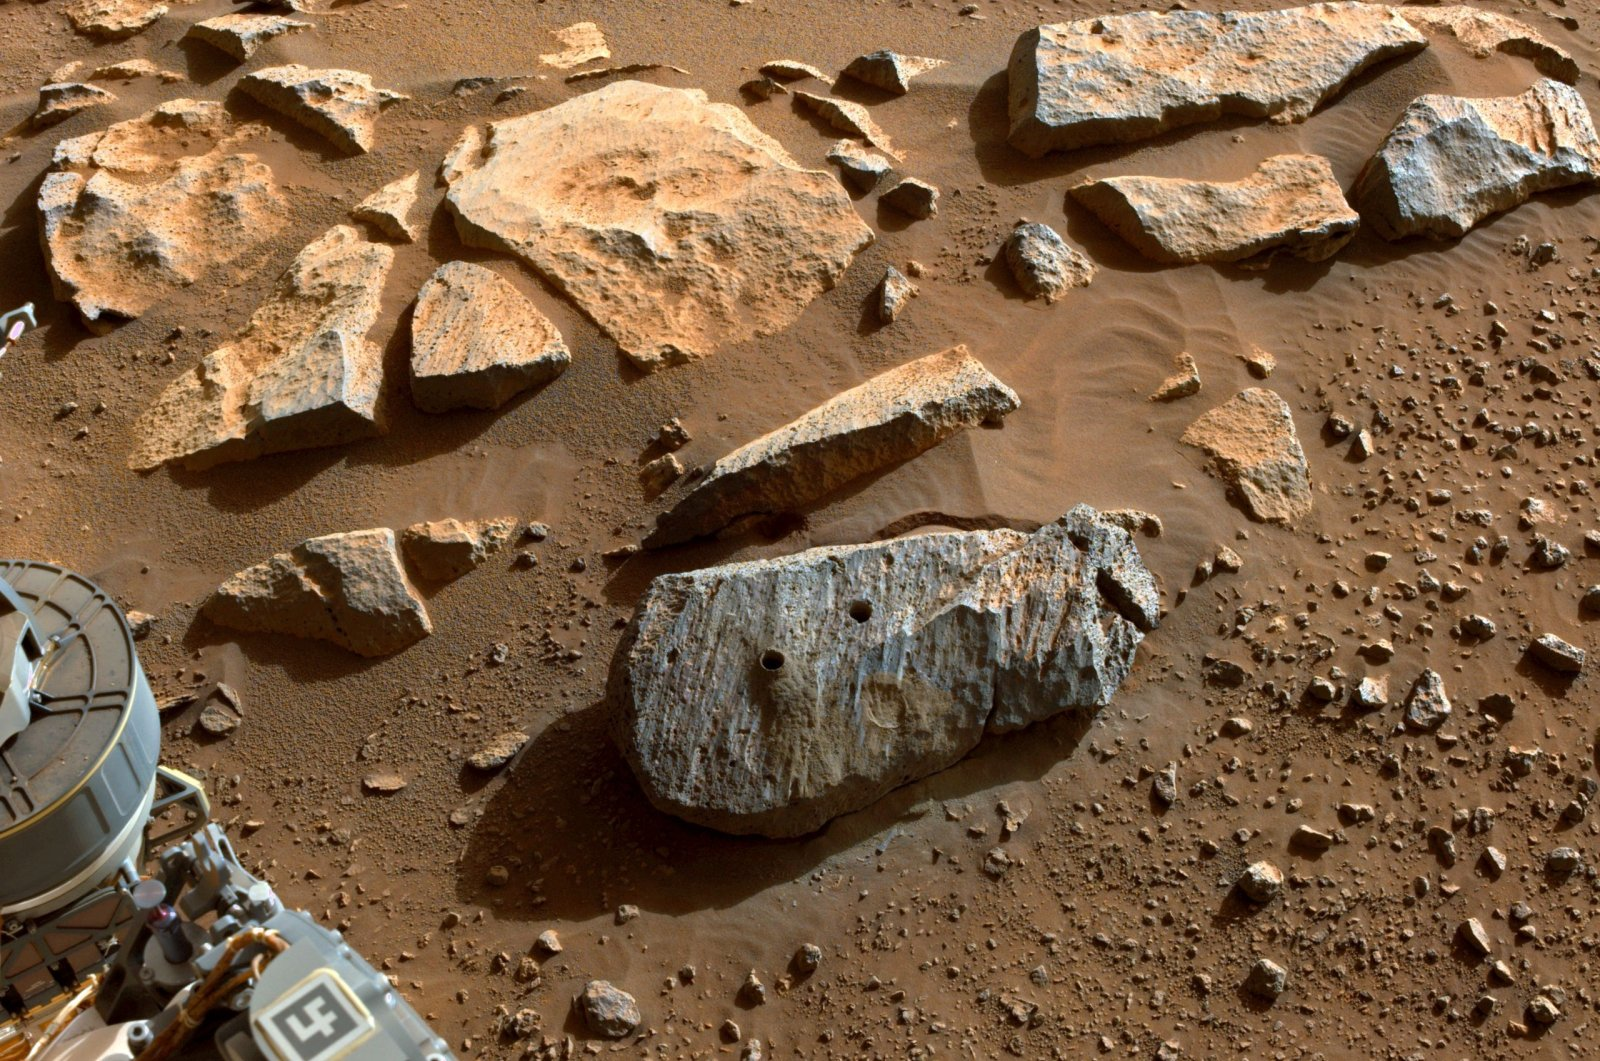 NASA Says Perseverance Collected Two Rock Samples From Rock That Was In Contact With Groundwater For Long